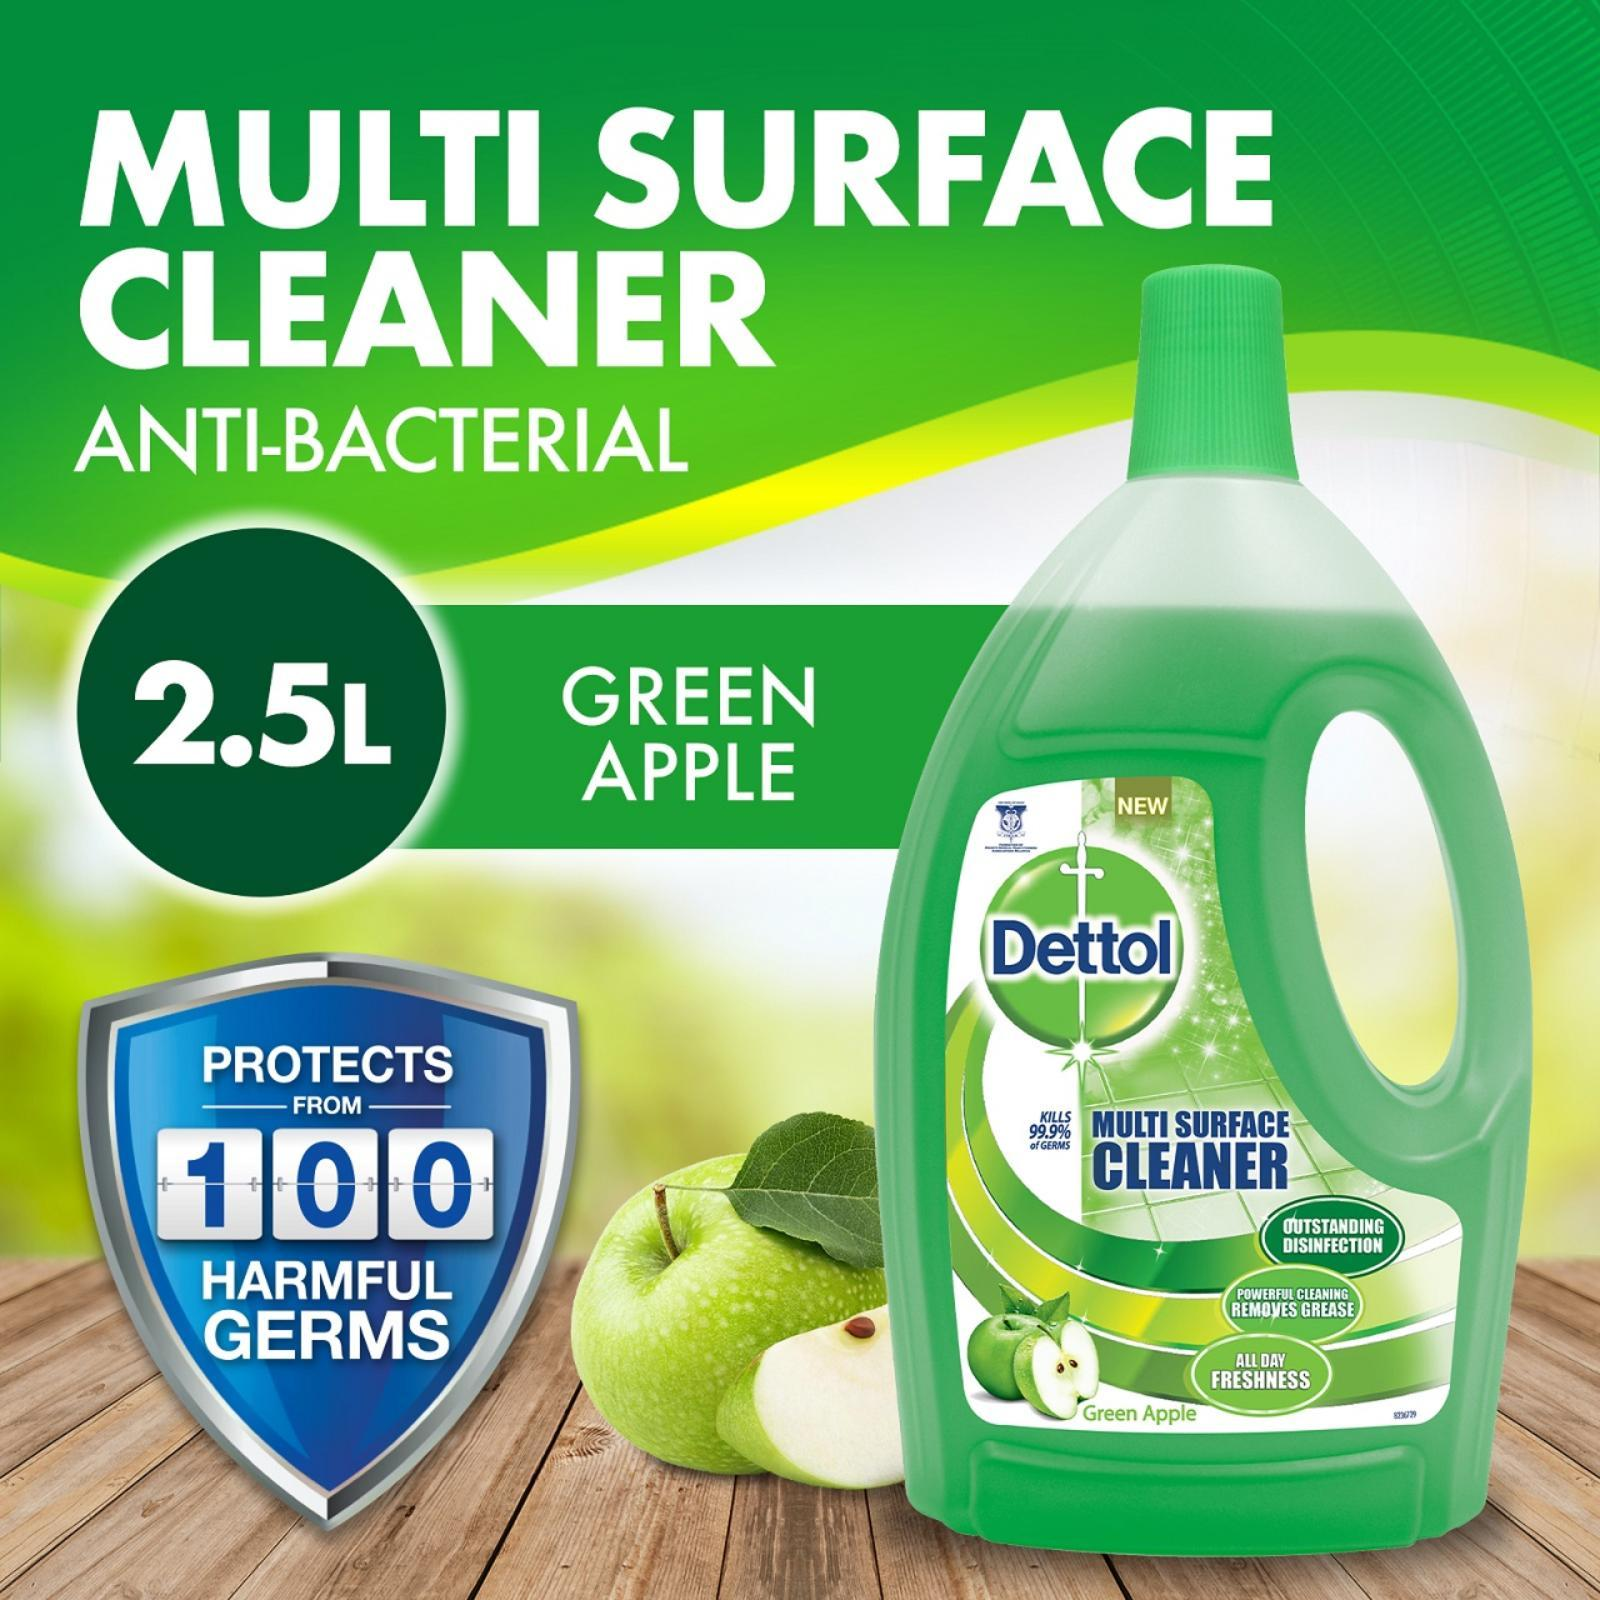 Dettol 4-in-1 Disinfectant Multi Surface Cleaner Green Apple 2.5L